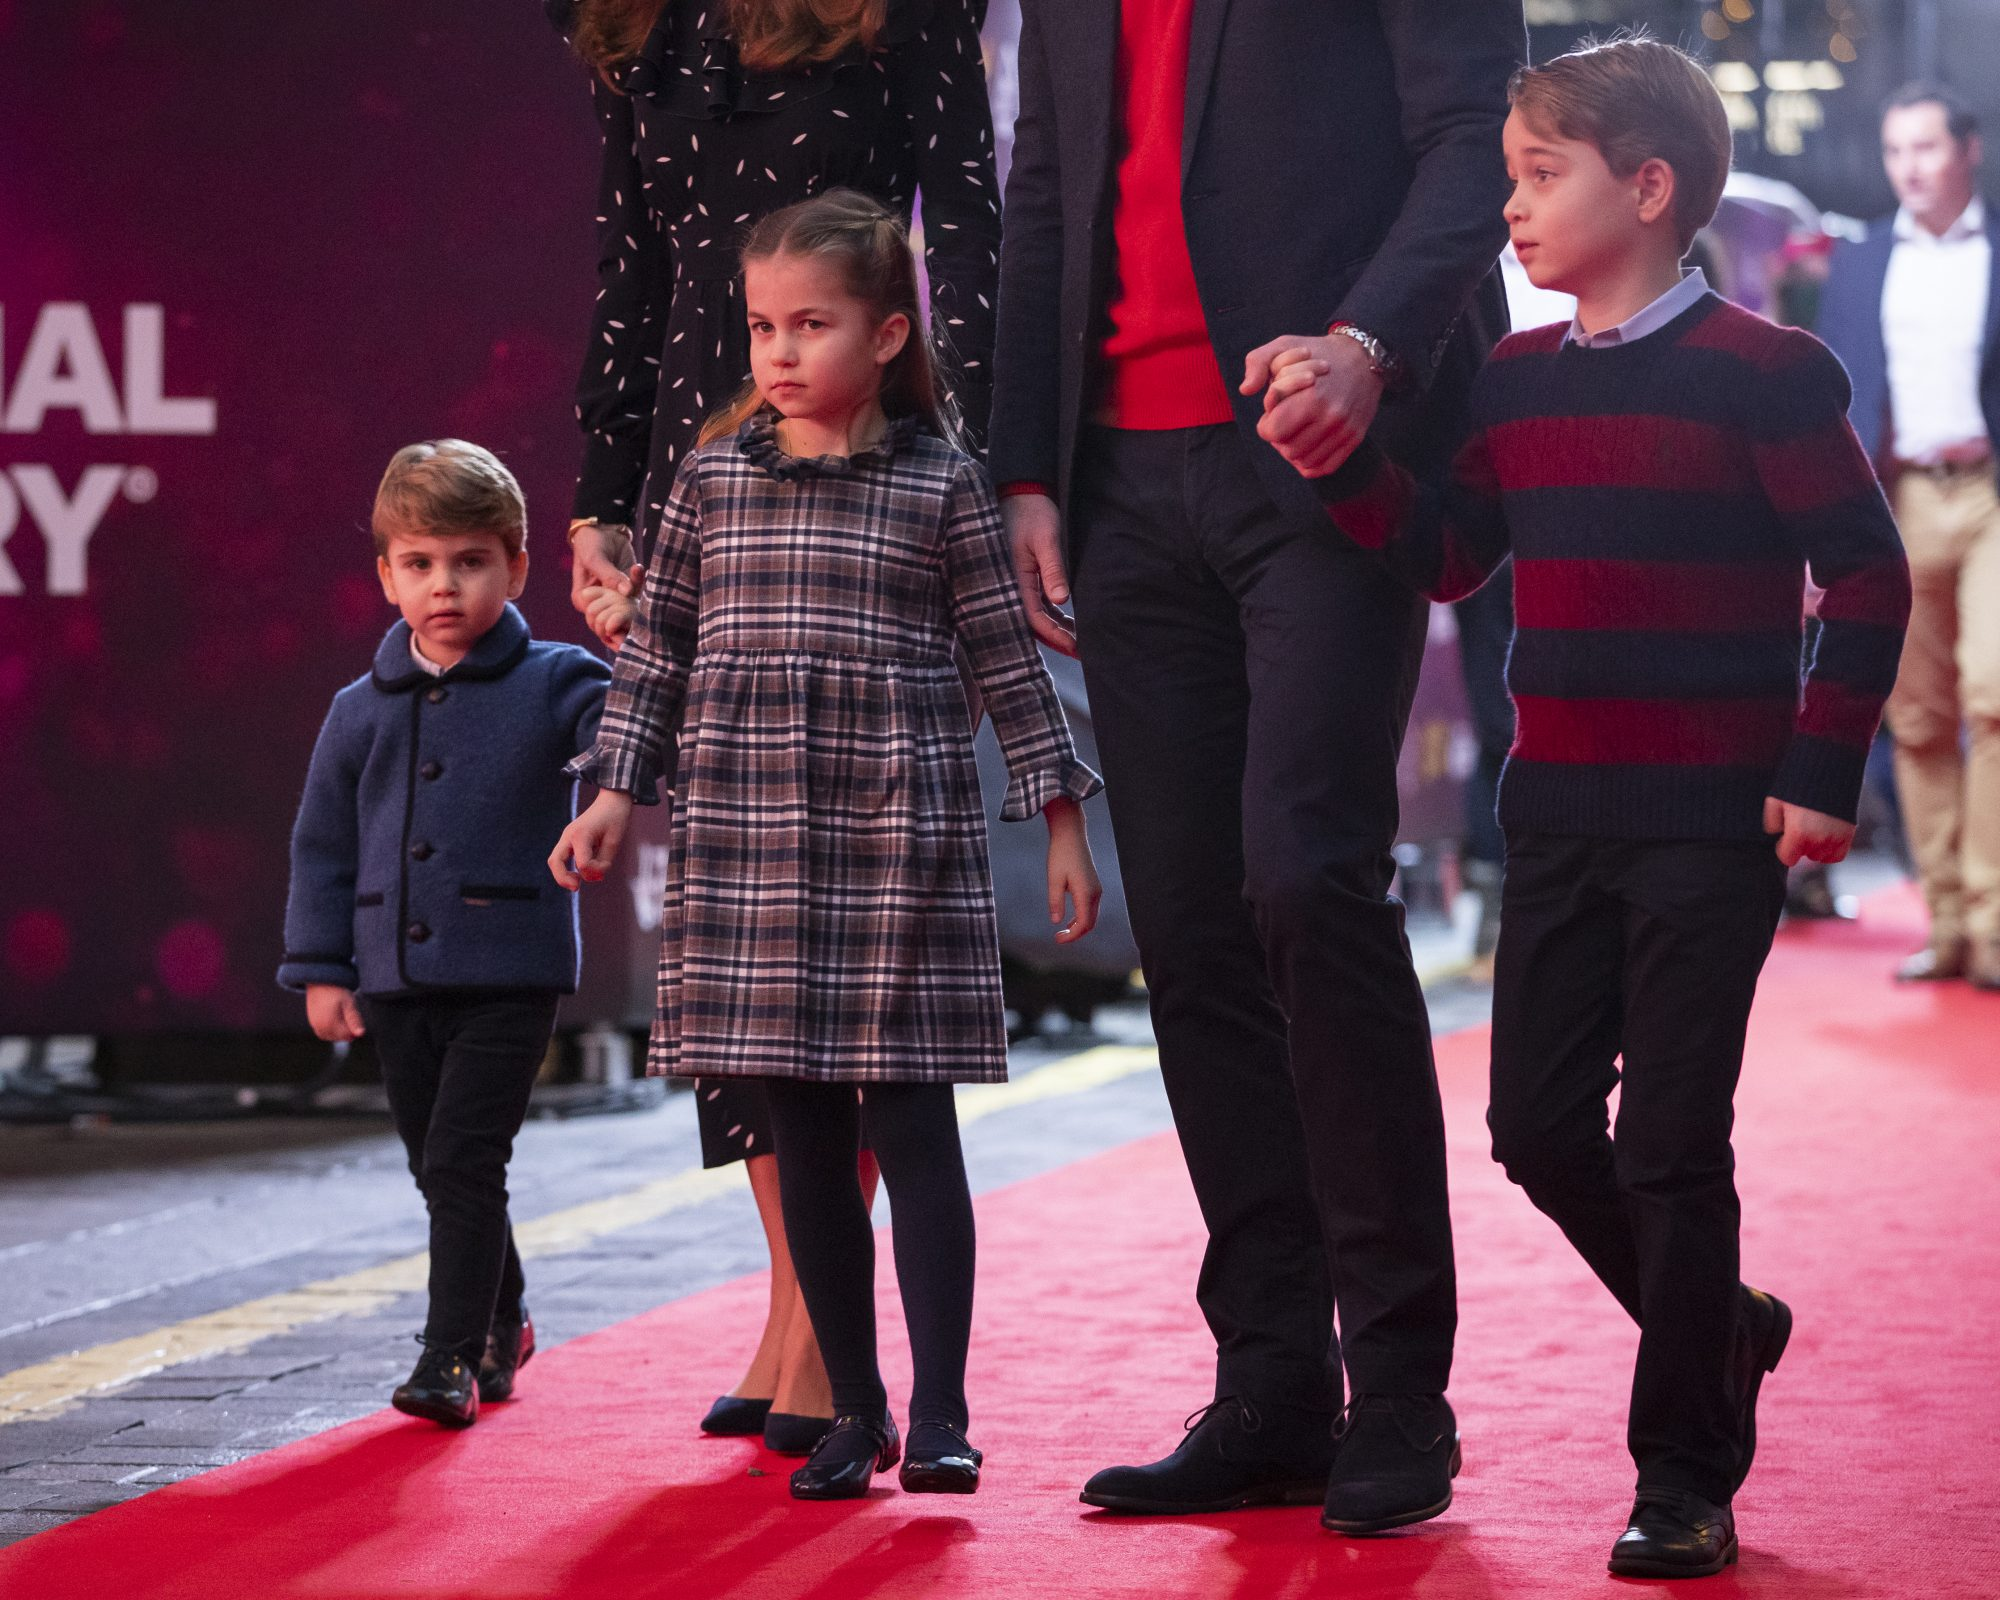 Kate MIddleton, principe William, principes Louis, Charlotte, George, Londres 2020